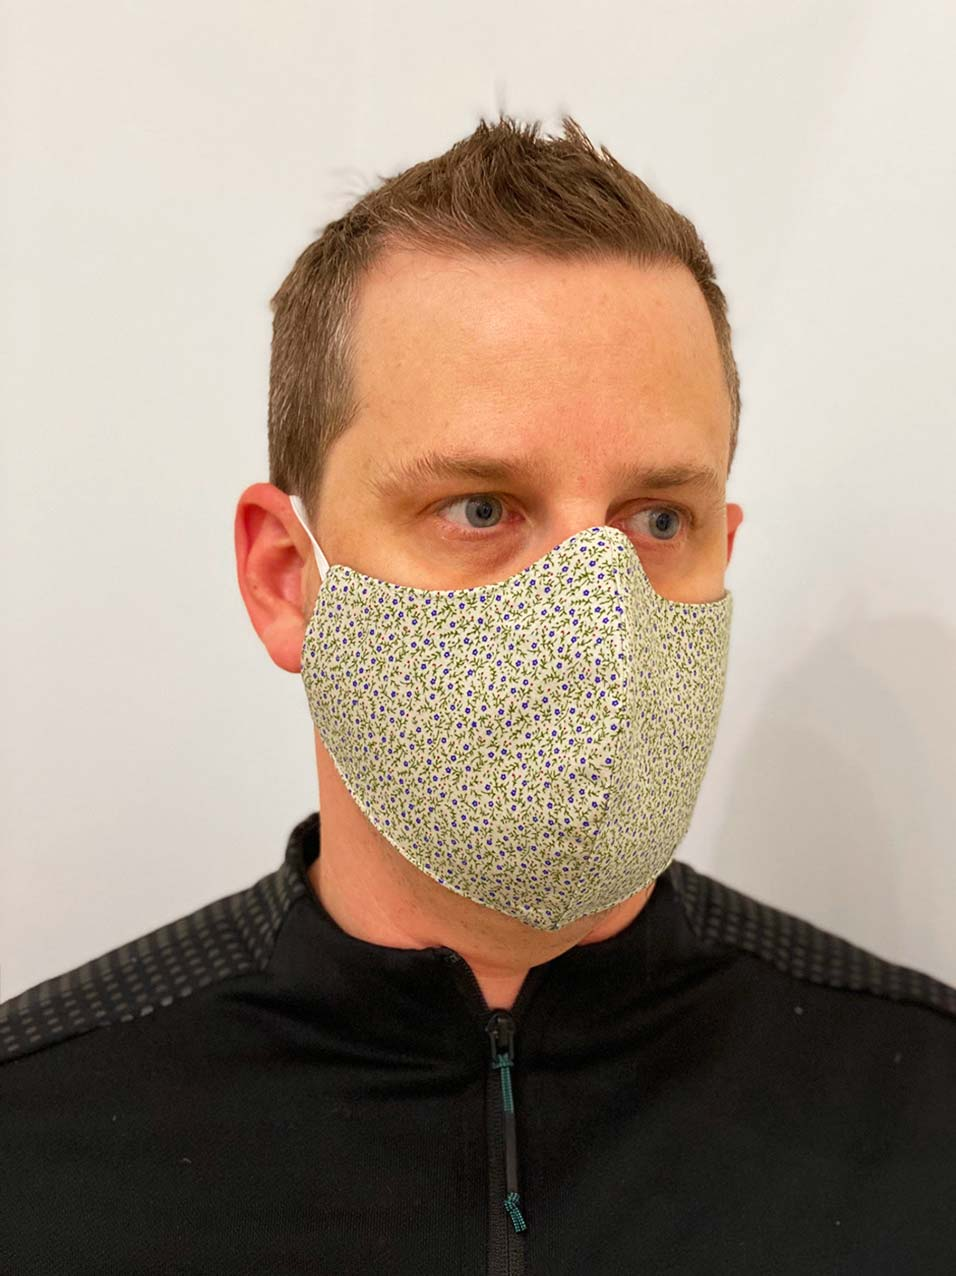 Designer reusable face mask with floral pattern worn by a man